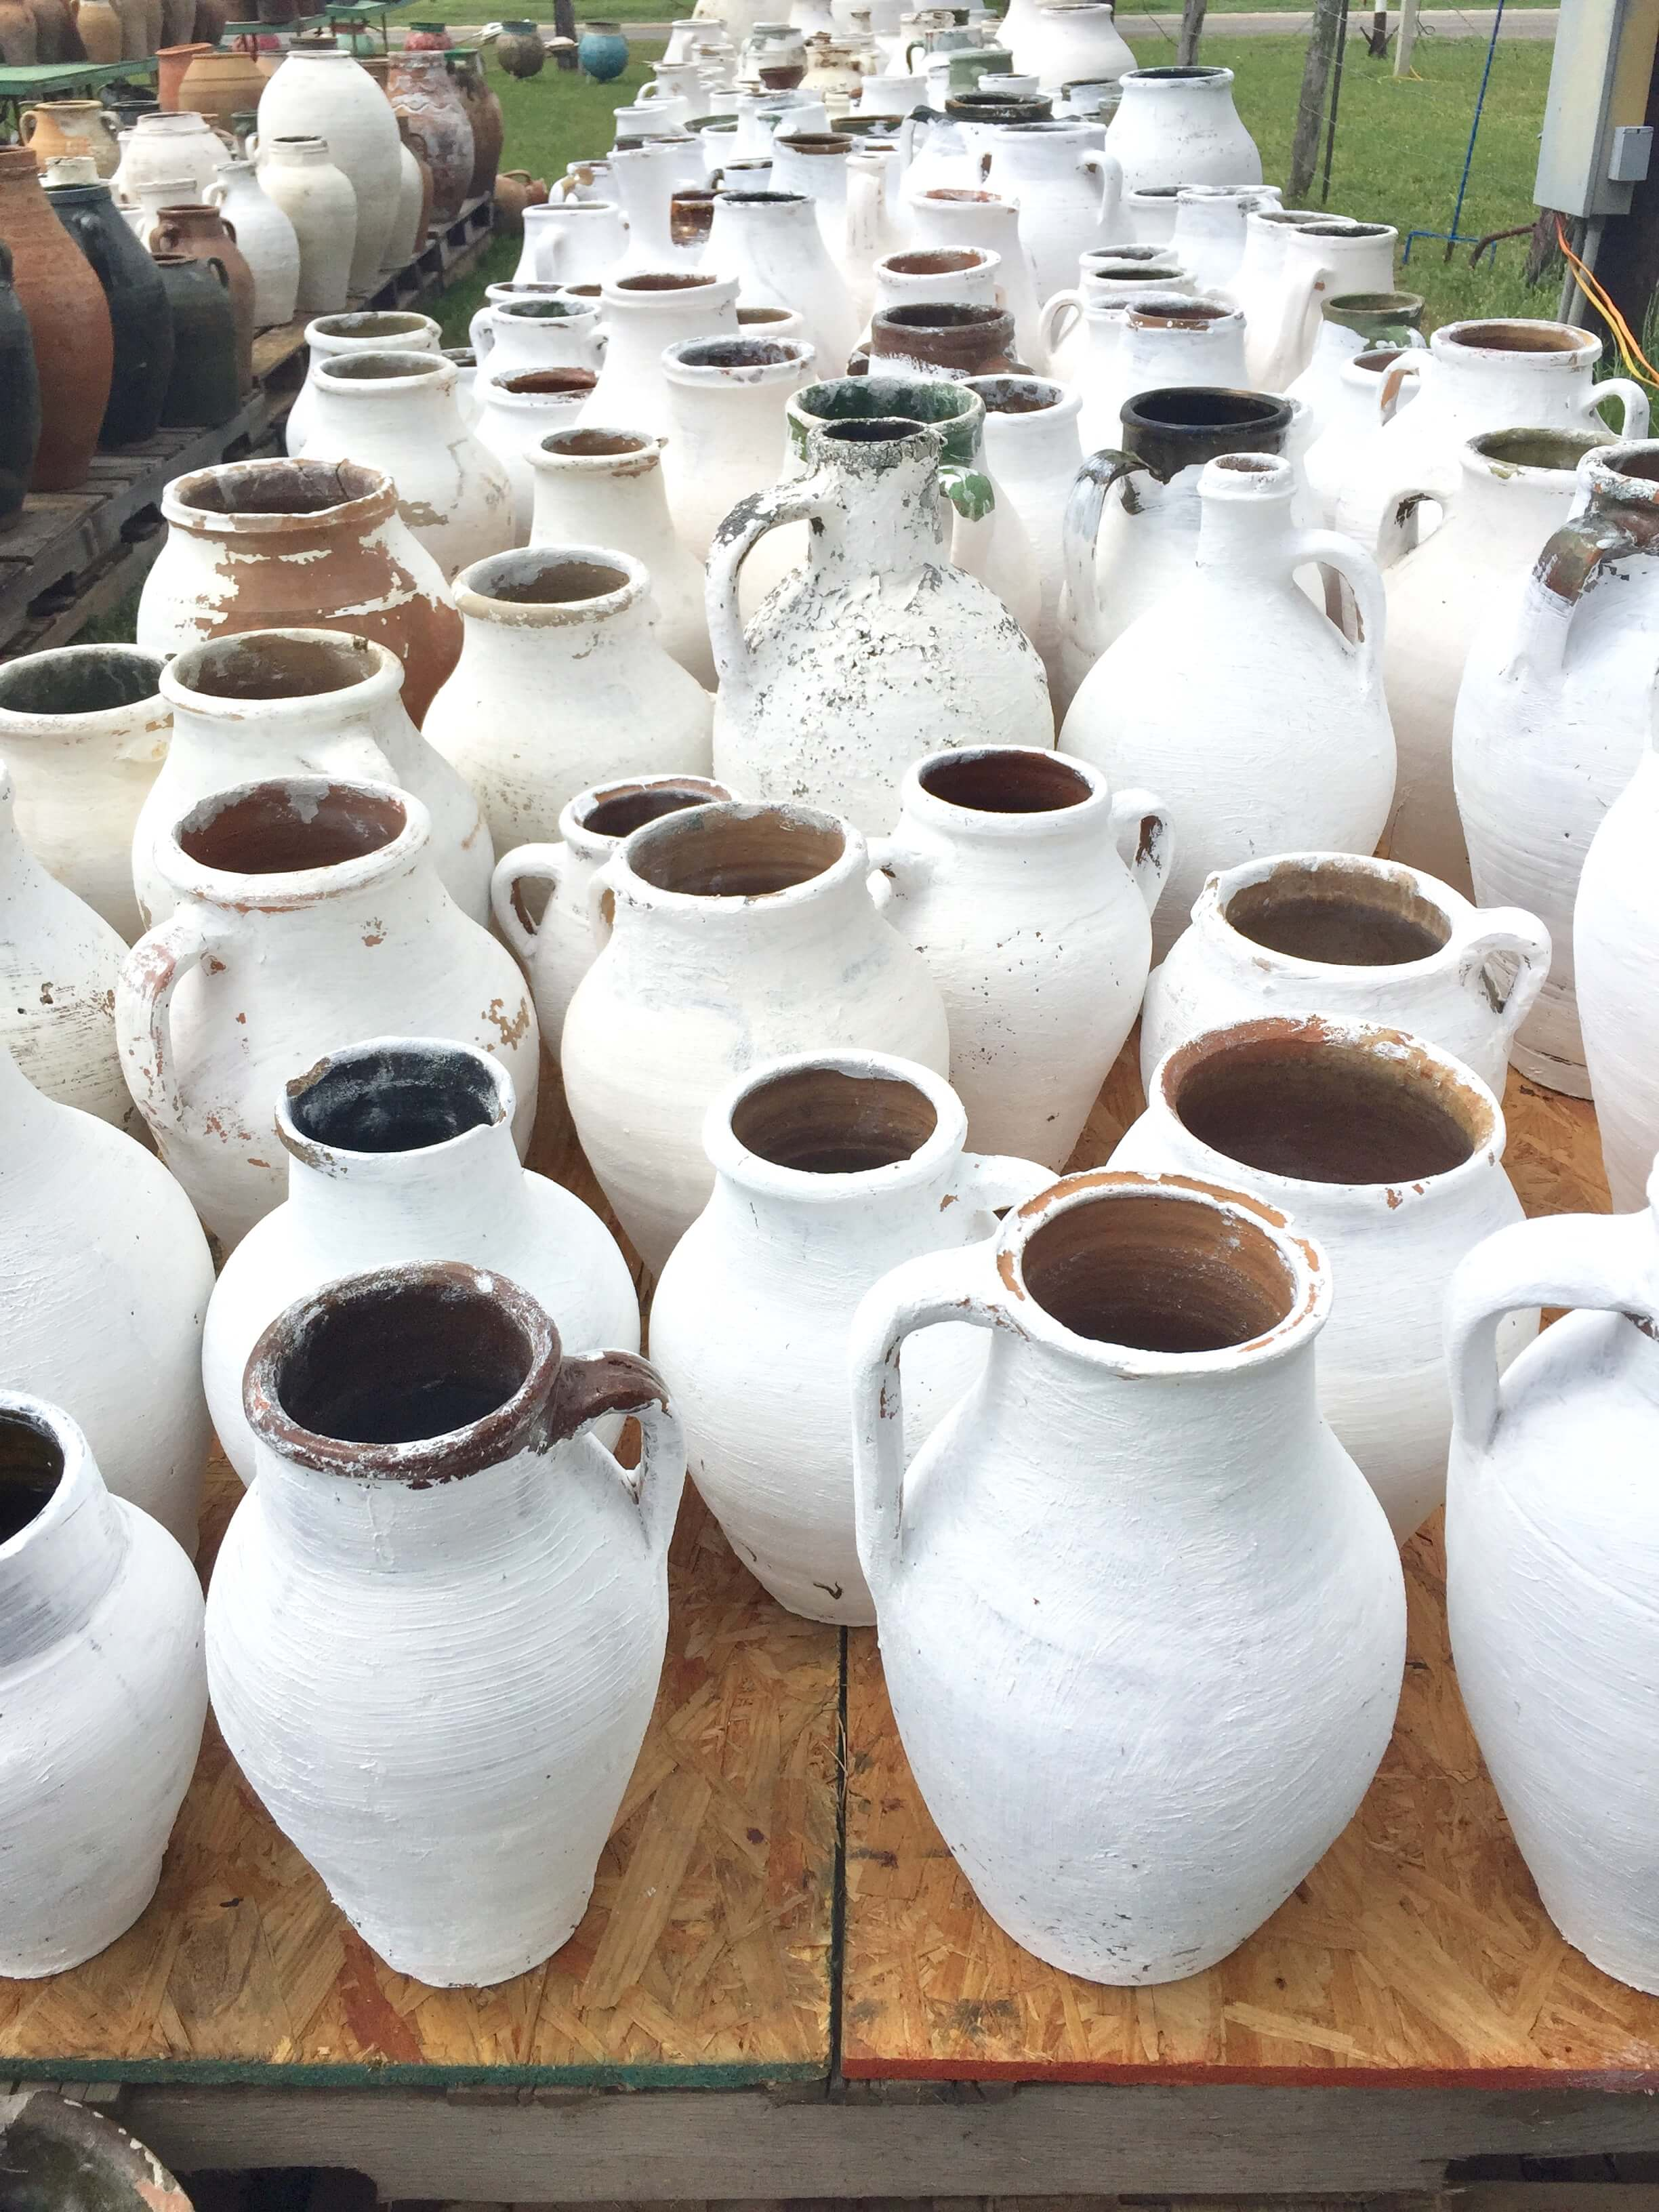 Antique olive jars painted white seen at Roundtop, TX #vases #olivejars #roundtop